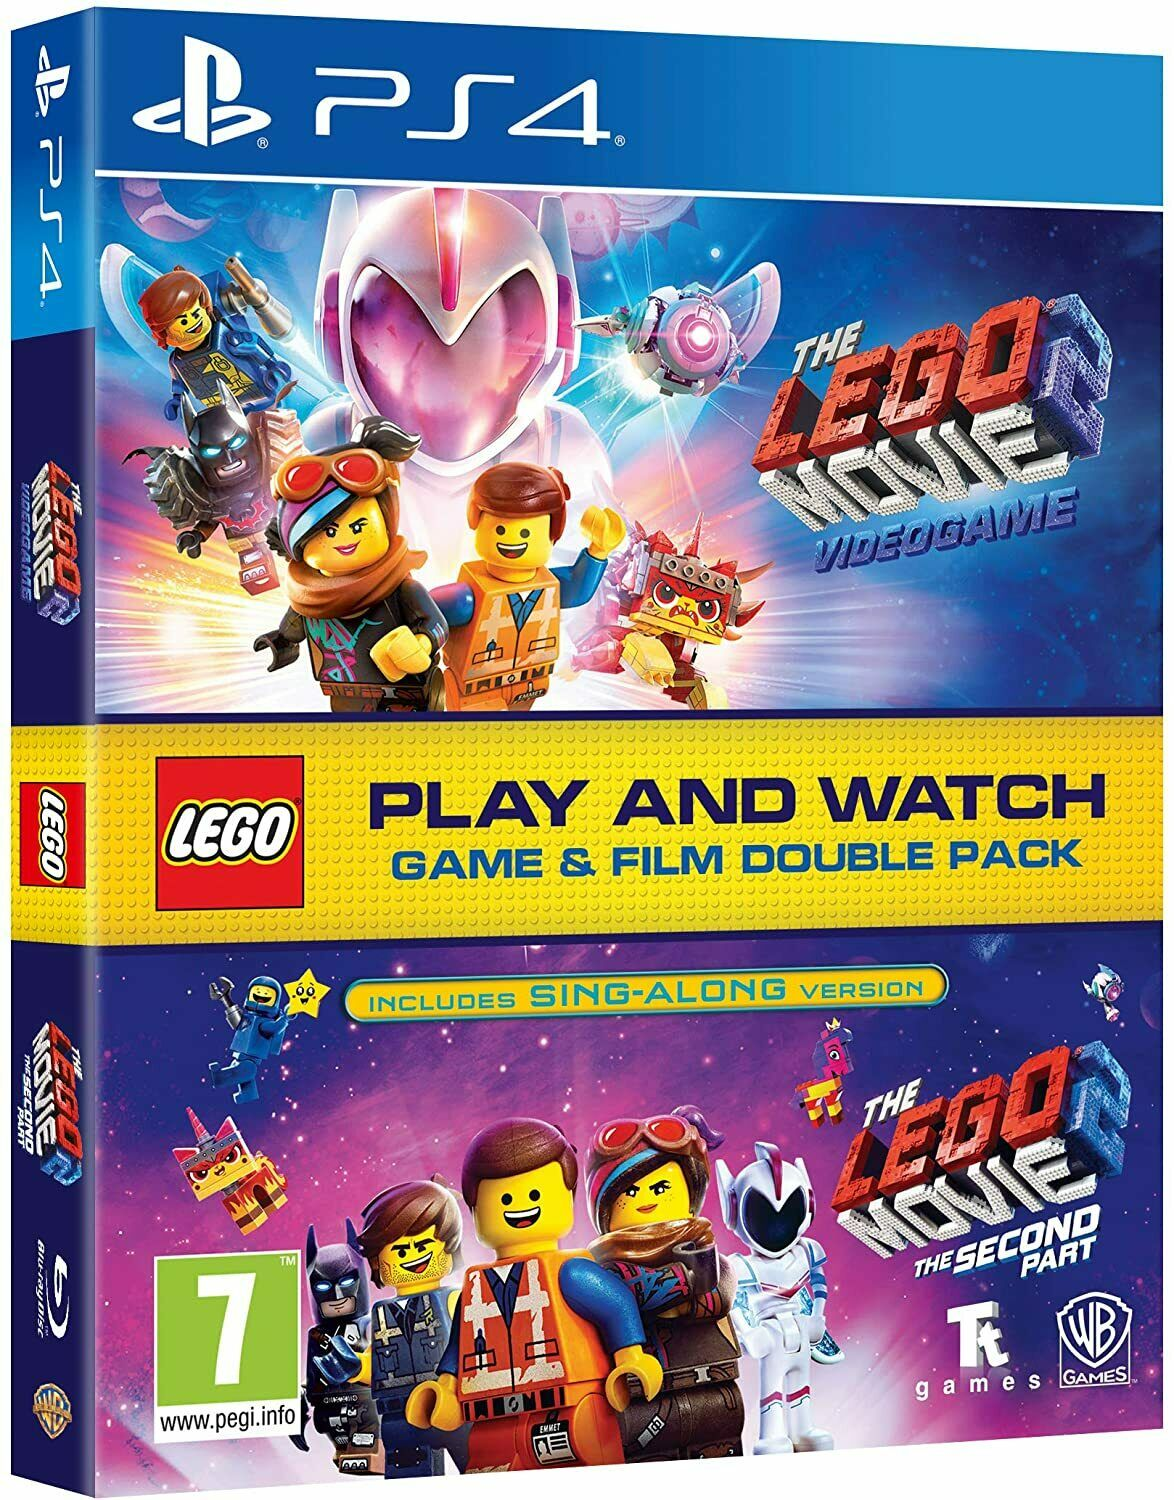 LEGO PS4 PS5 Games - New & Sealed - LEGO Sony PlayStation 4 5 Movie Game Range